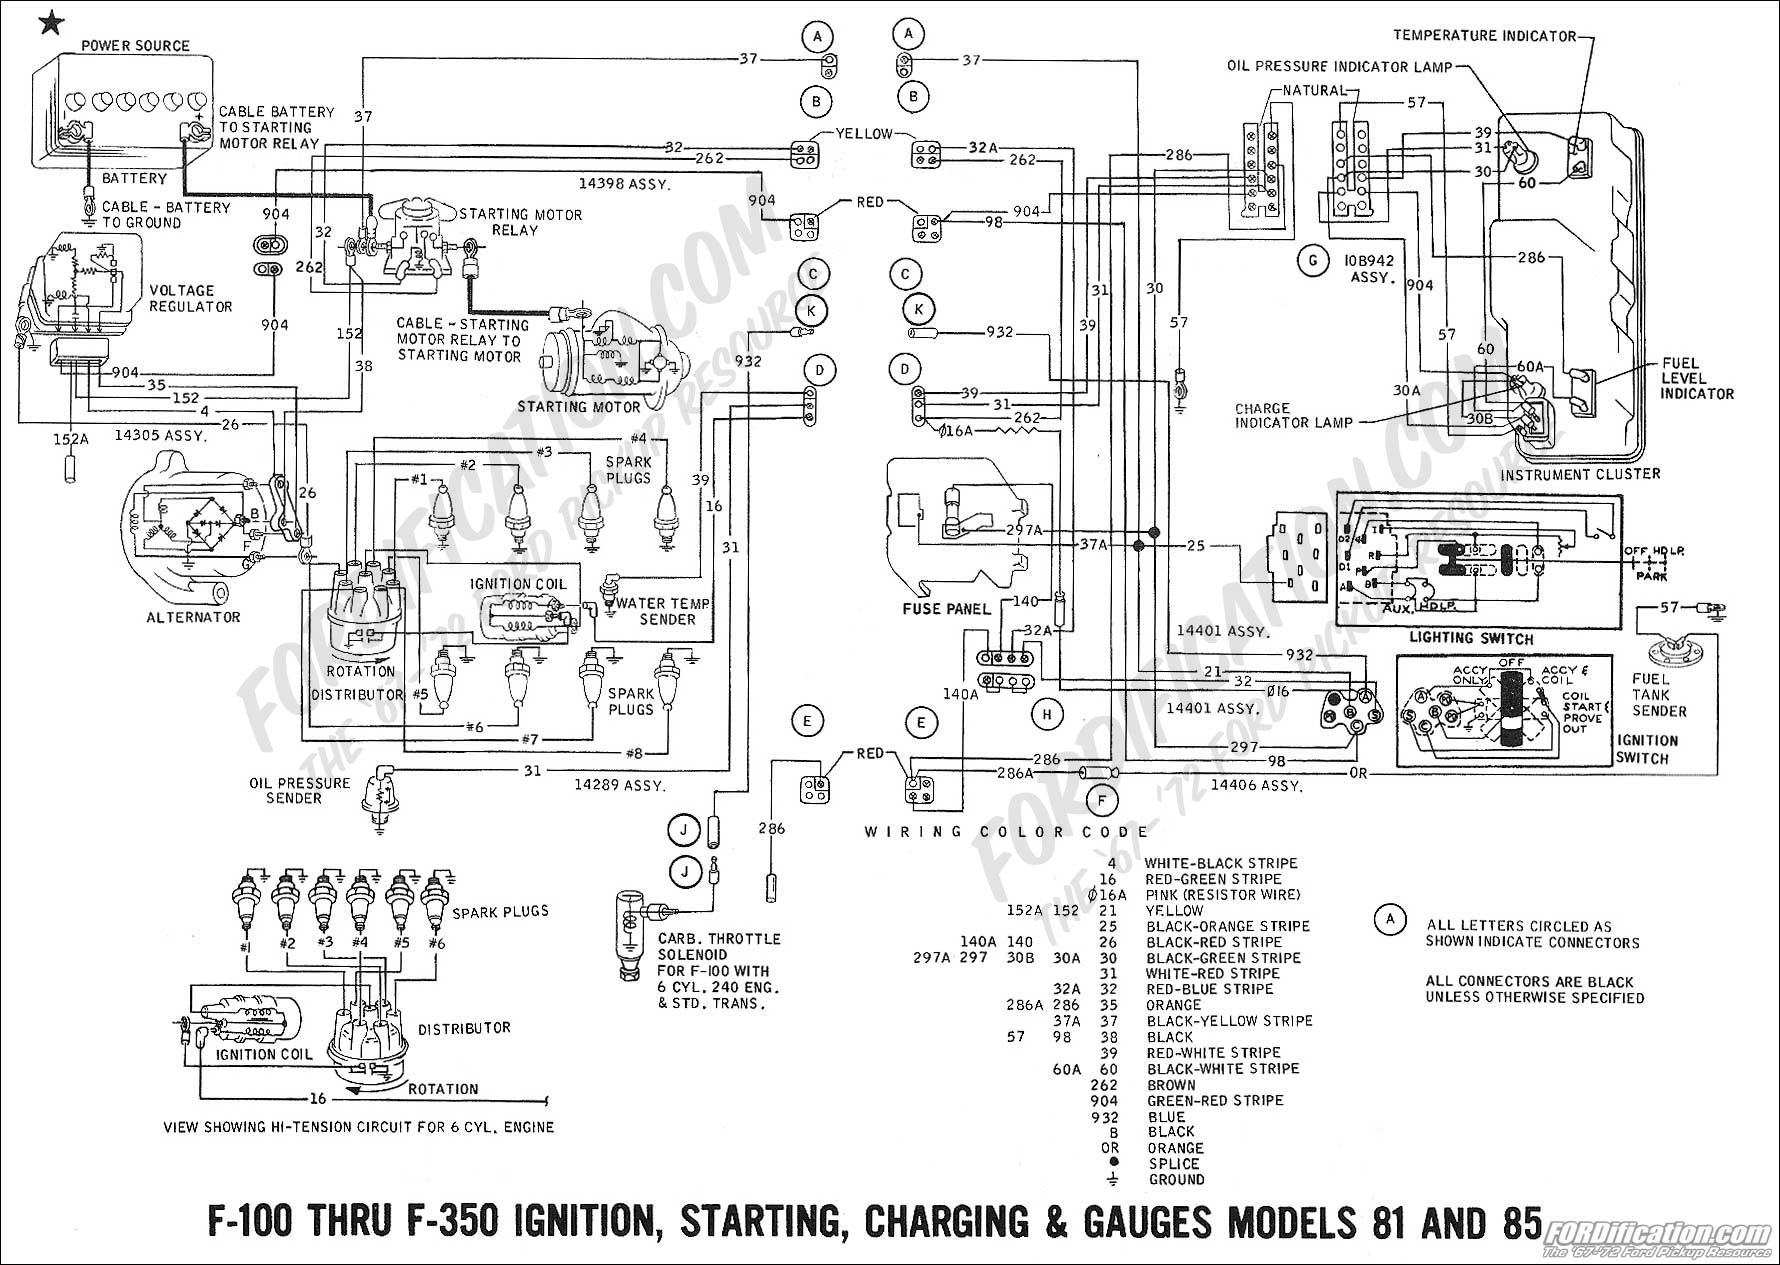 hight resolution of 1968 ford f250 wiring diagram wiring diagram third level 89 f250 tail light wiring diagram 1968